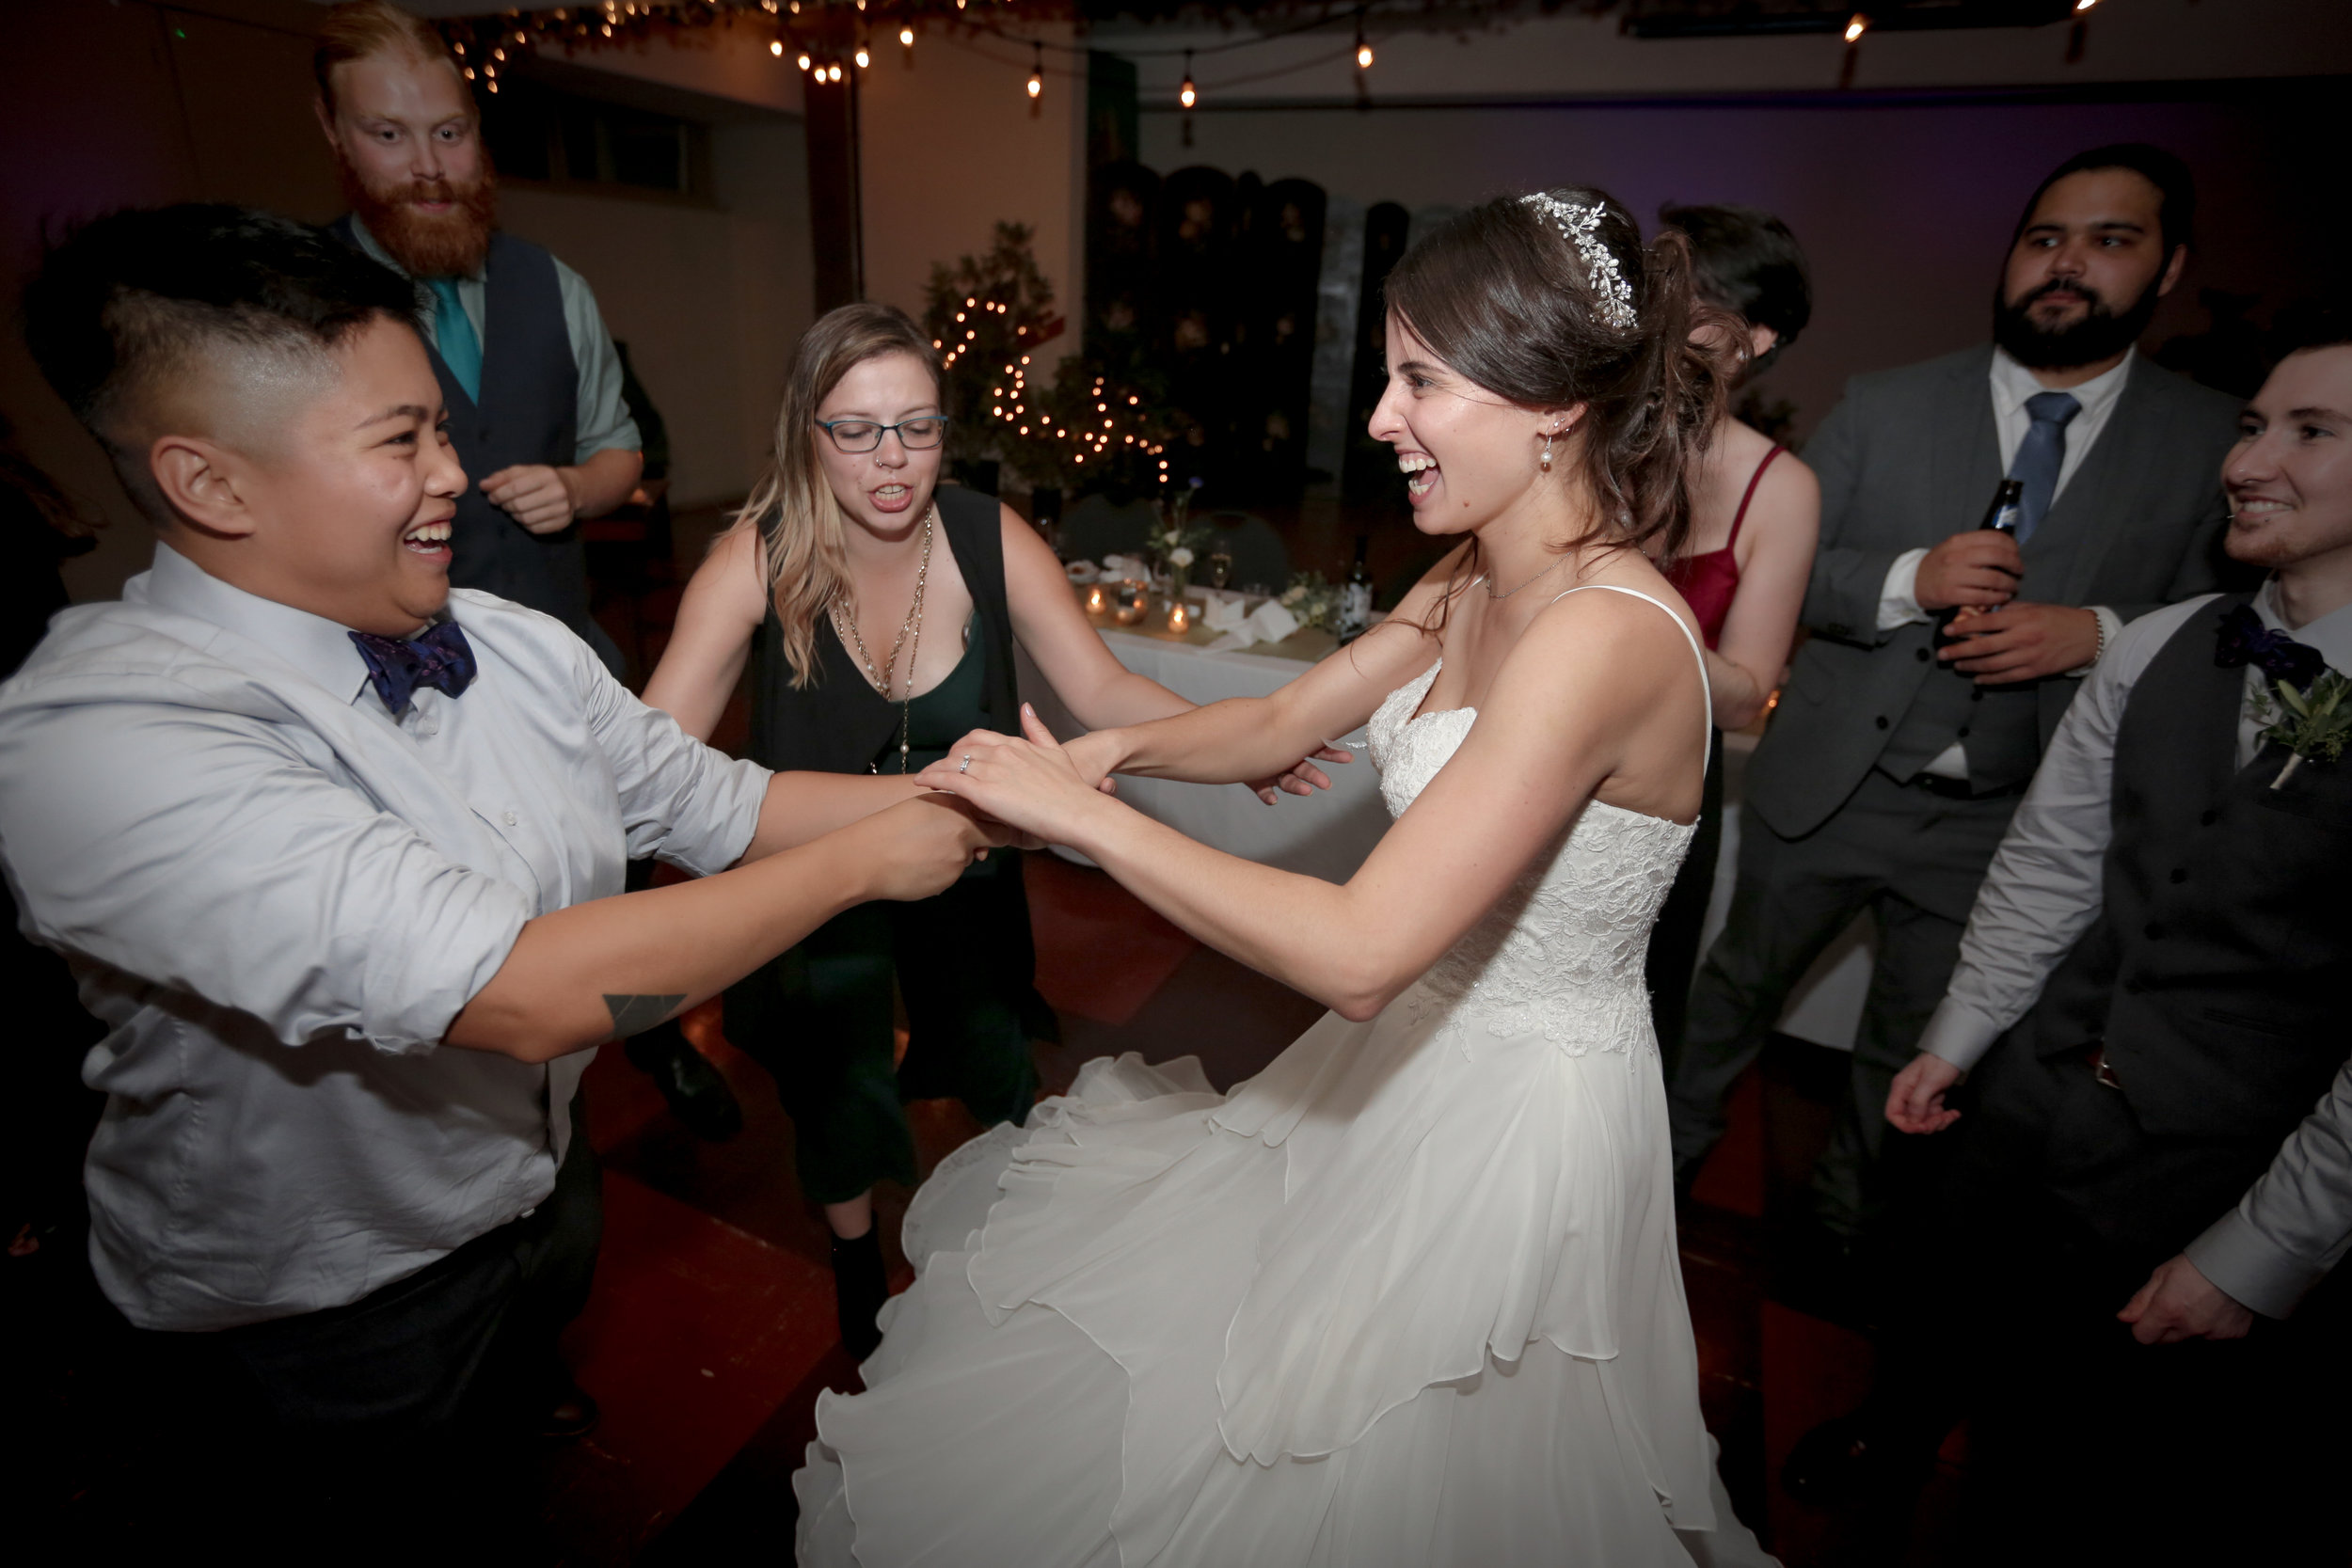 Emily&AaronWedding (558 of 572).jpg